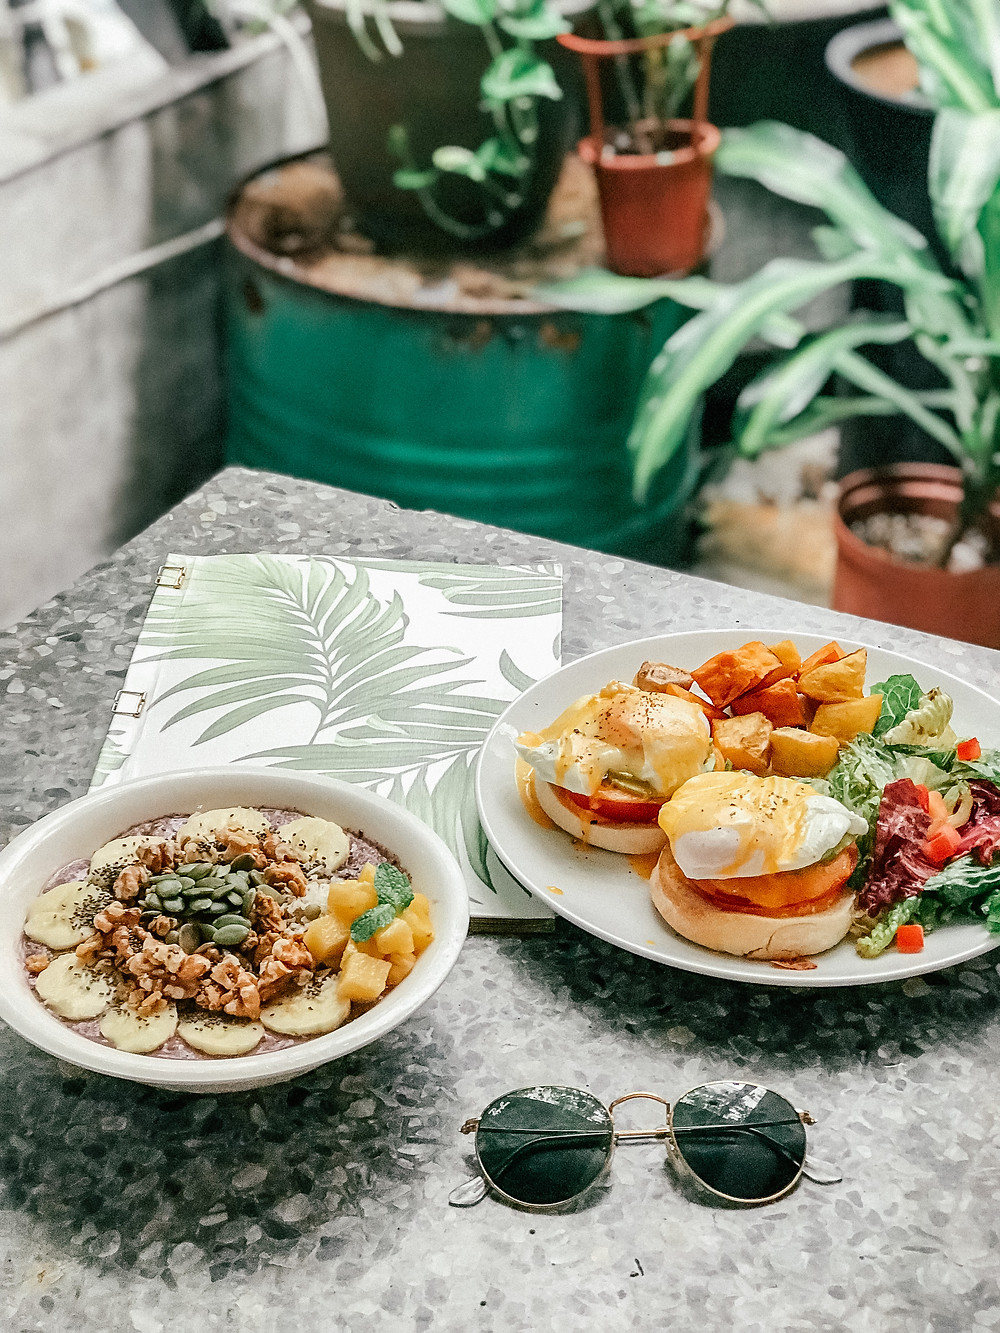 HERBAN Kitchen and Bar | 7 Taipei Brunch Spots with Outdoor Seating | Food | A Style Alike